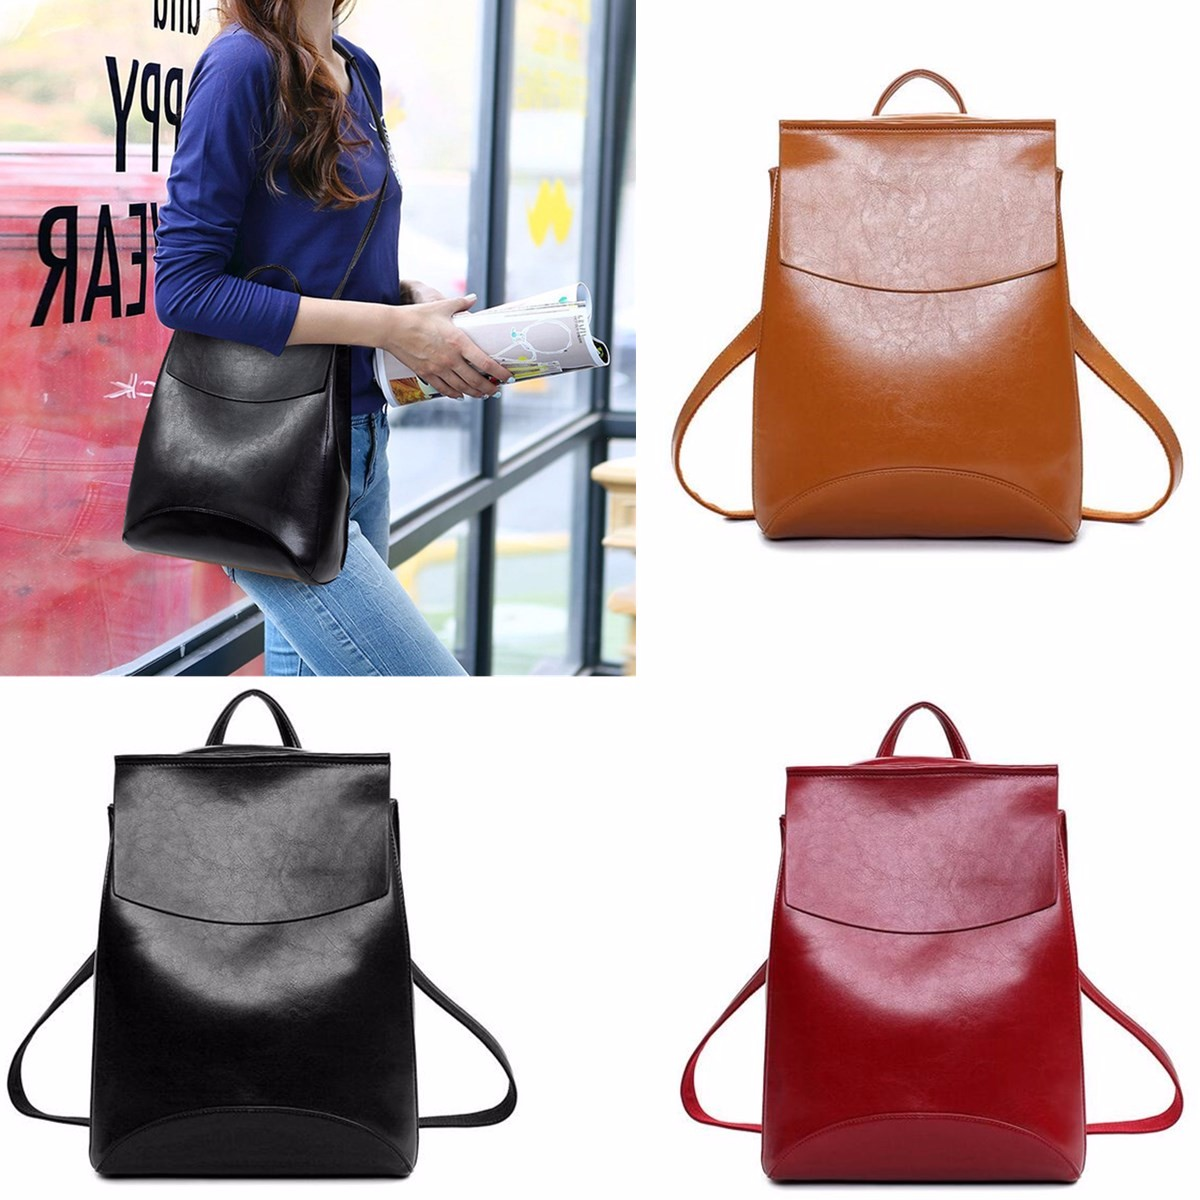 Aequeen Sac À Dos Multifonctionnel Epaule Poche Voyage Pour Fille Femme uoaka9yc